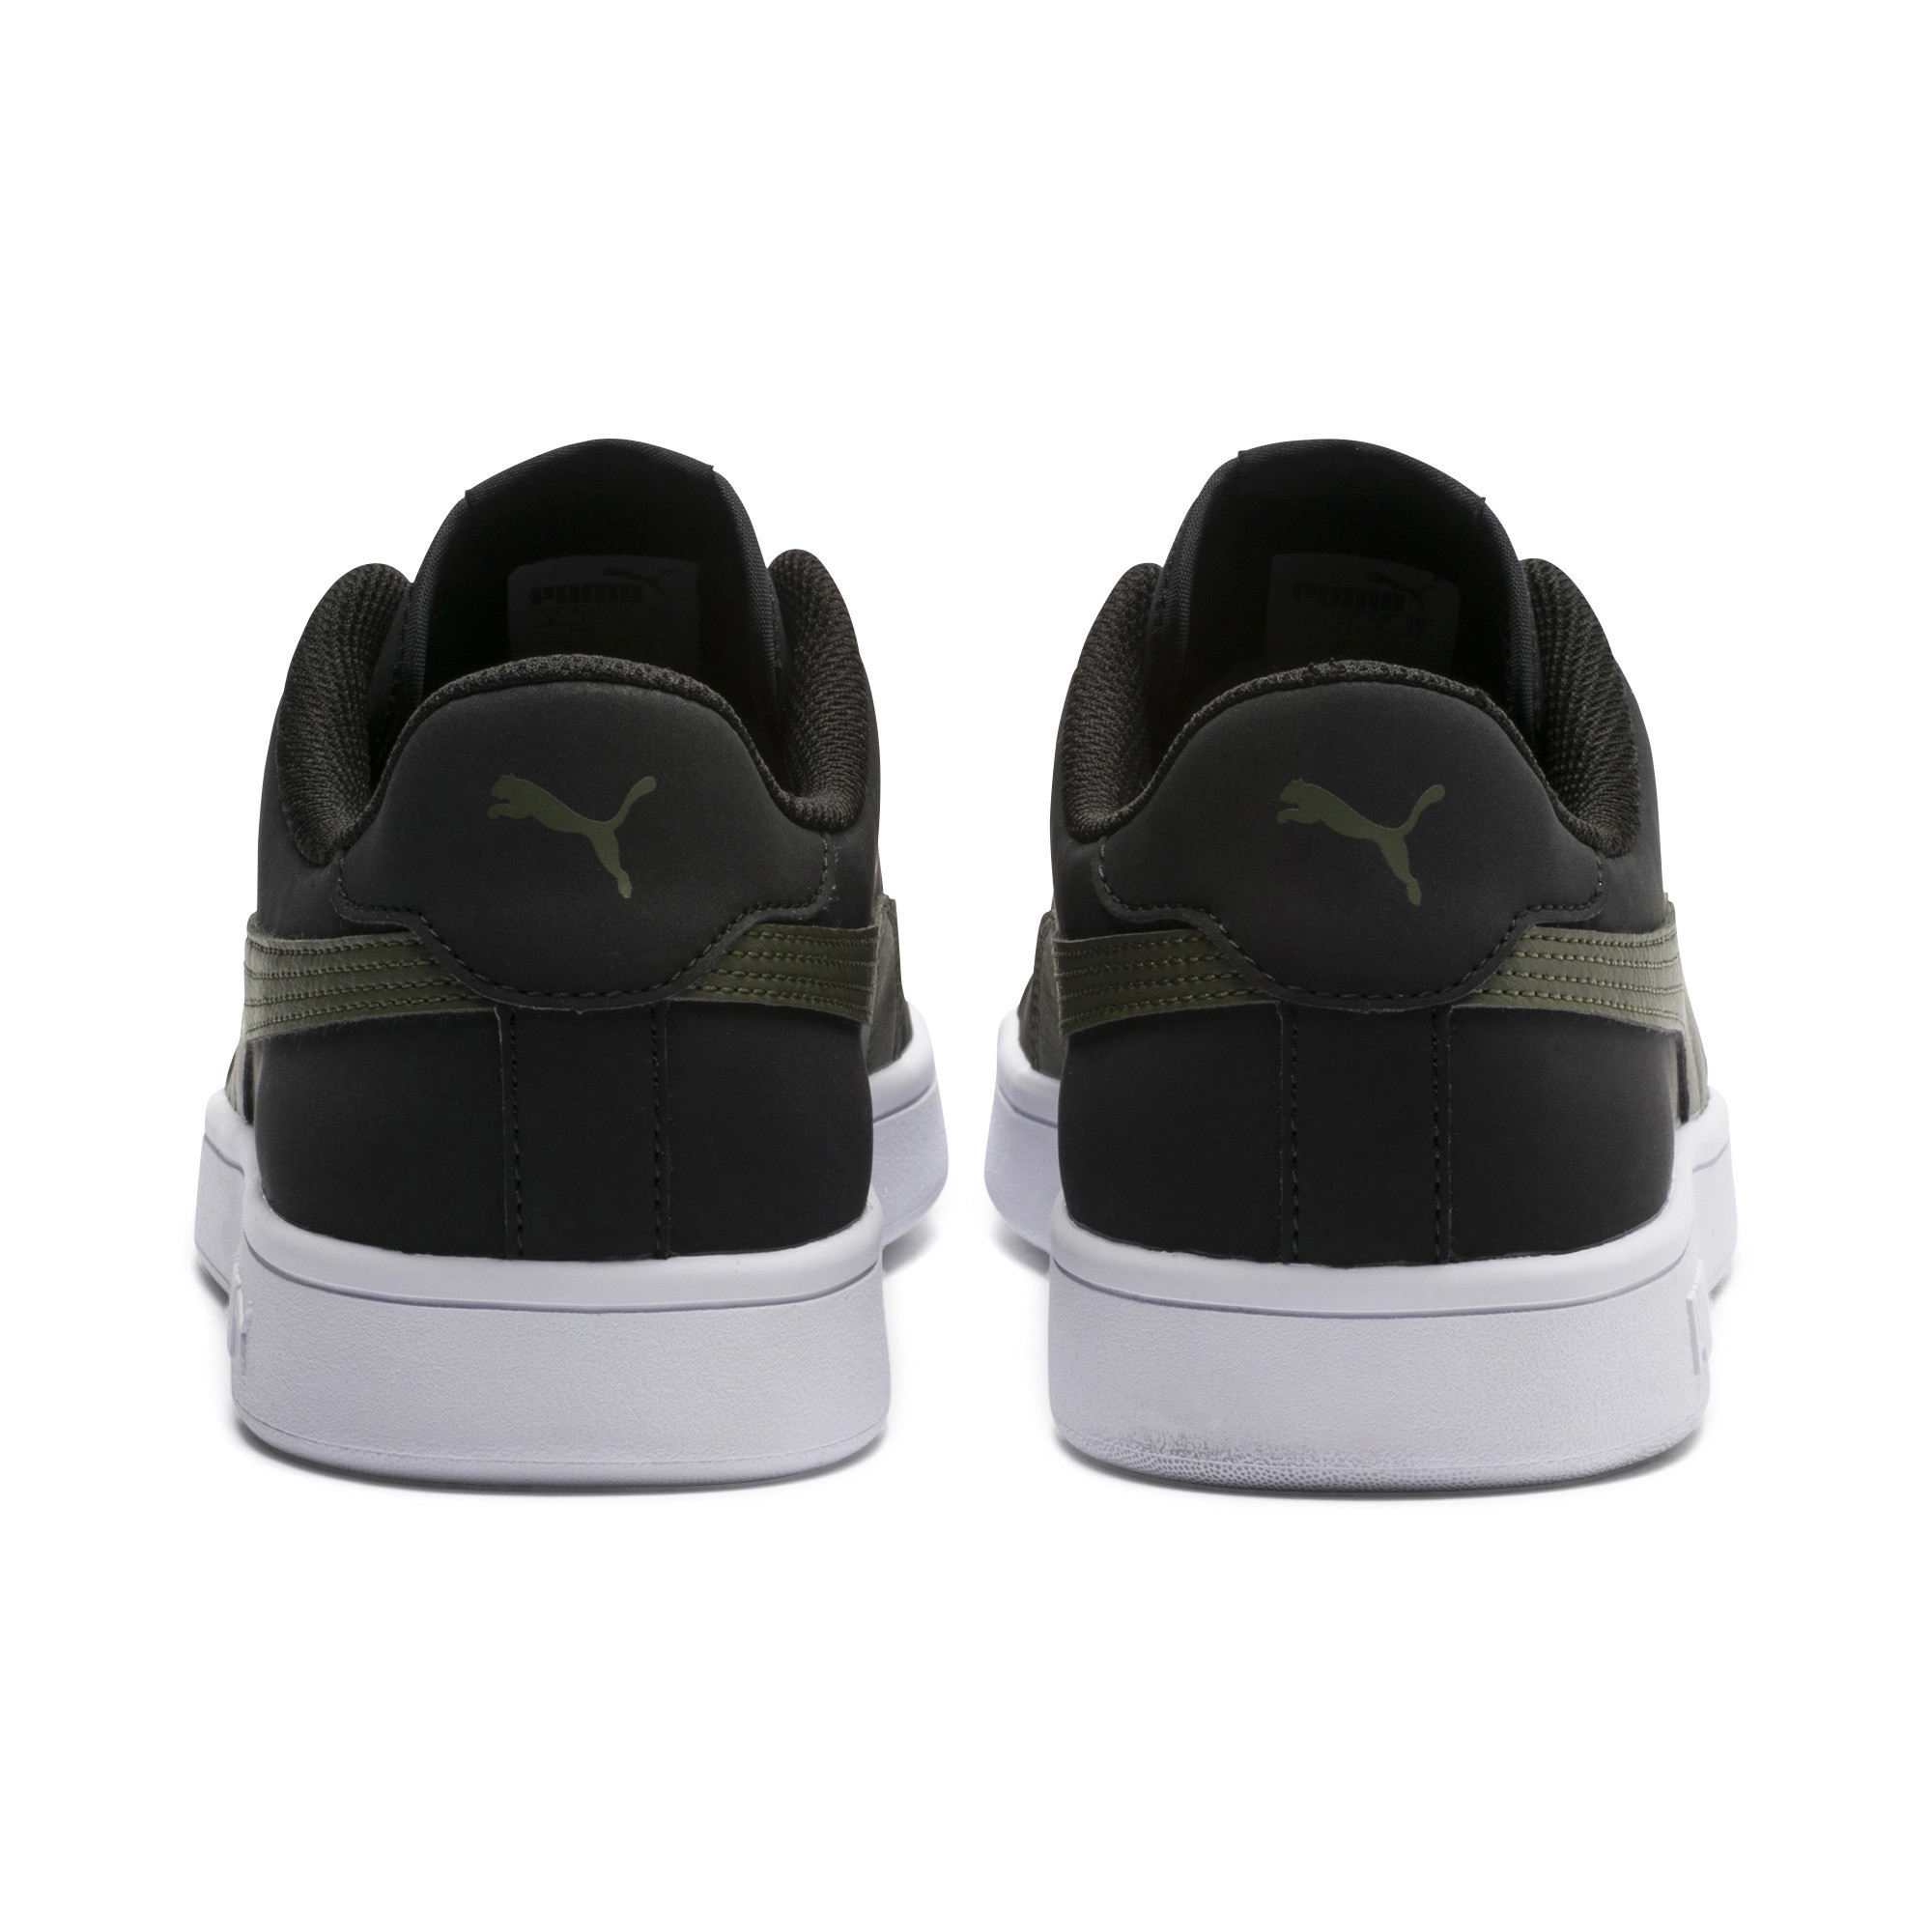 PUMA-PUMA-Smash-v2-Nubuck-Men-039-s-Sneakers-Men-Shoe-Basics thumbnail 3